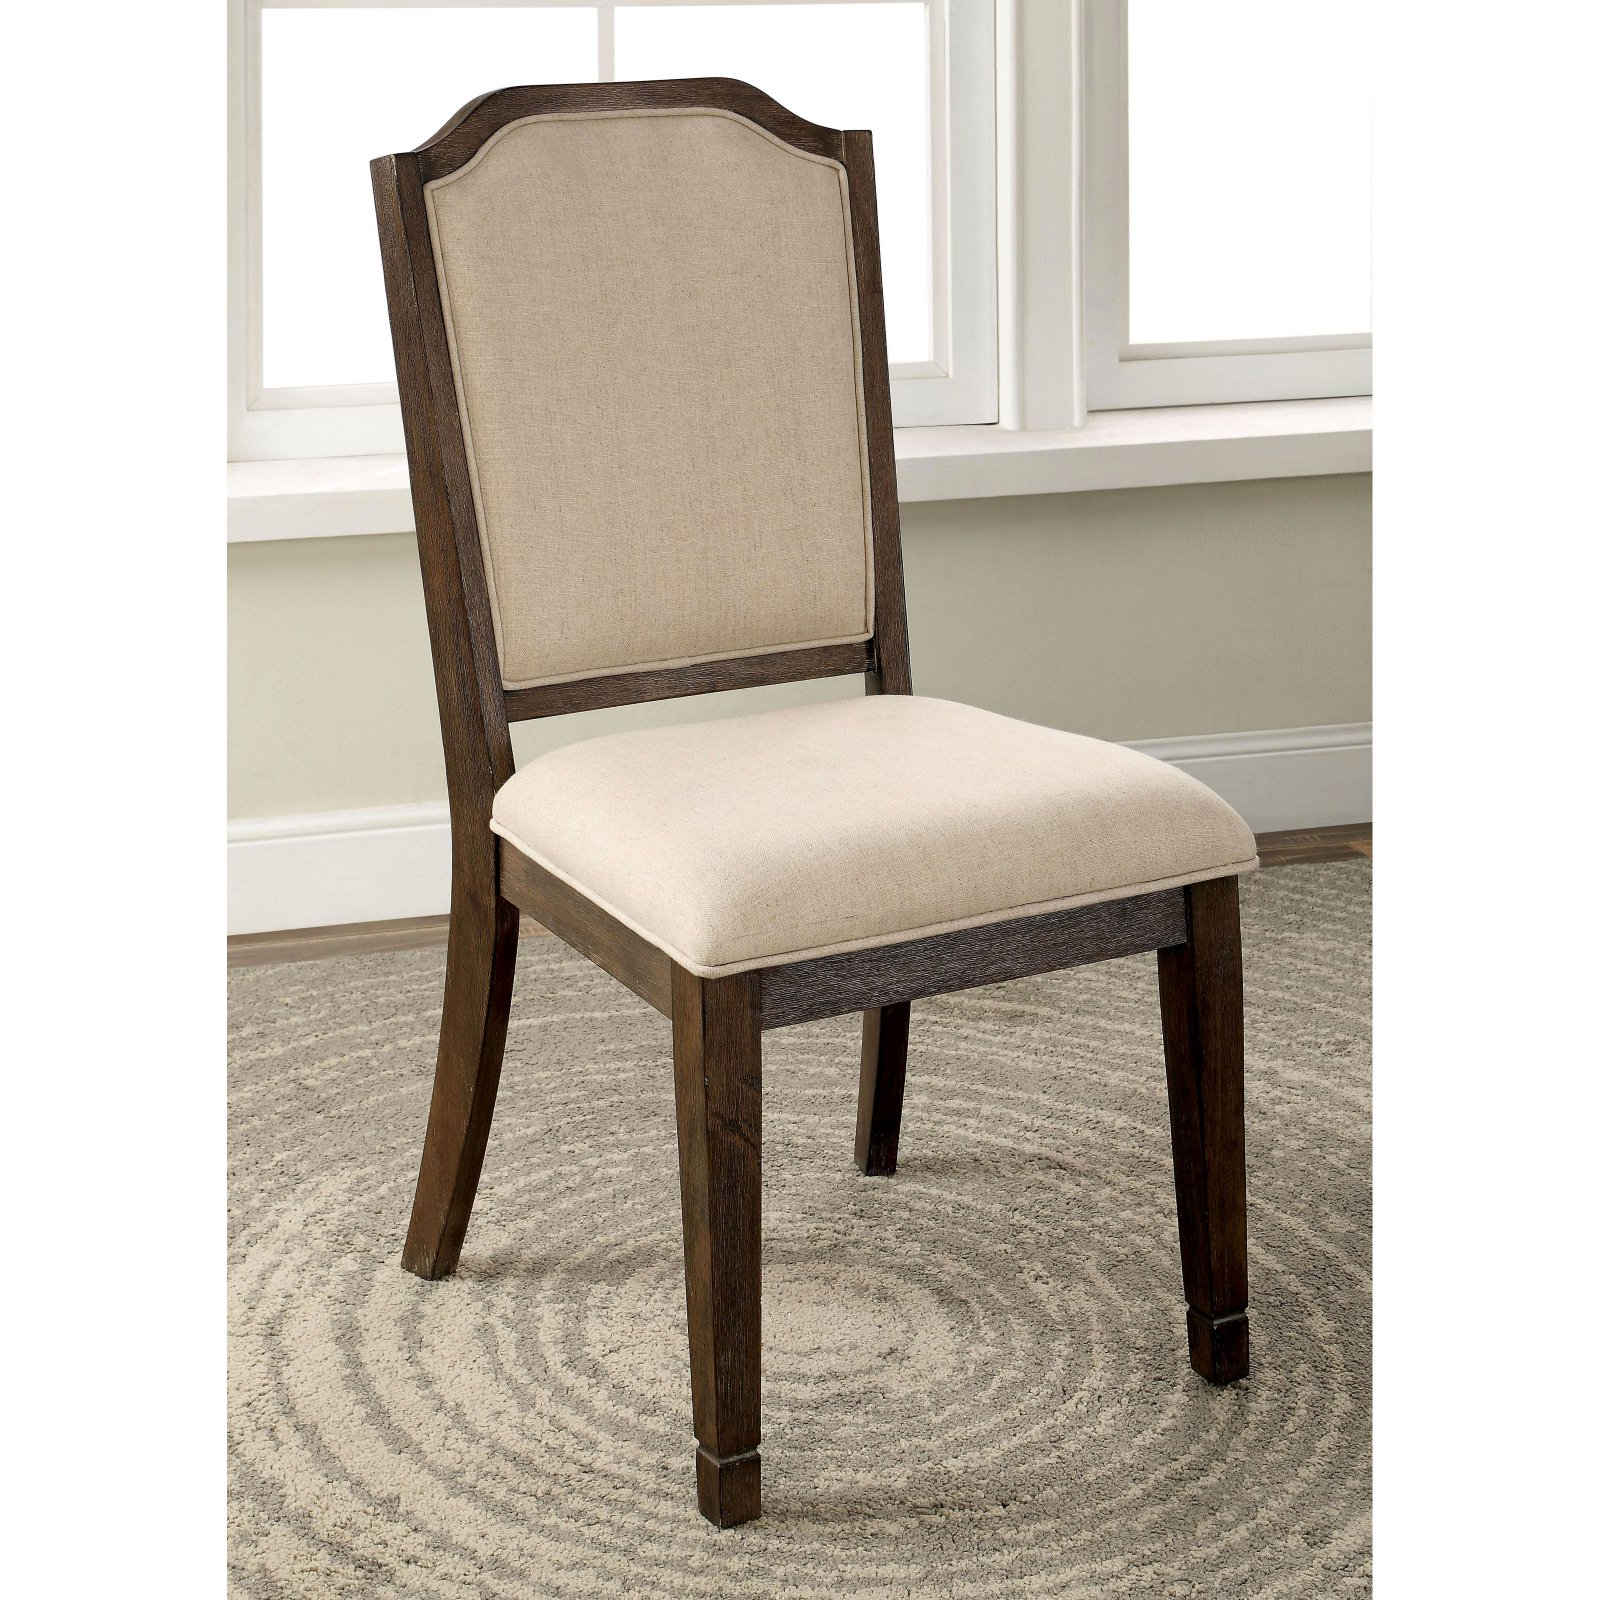 ed1e3eb3132a4a Furniture of America Dorin Side Chair - Set of 2 | Products in 2019 ...